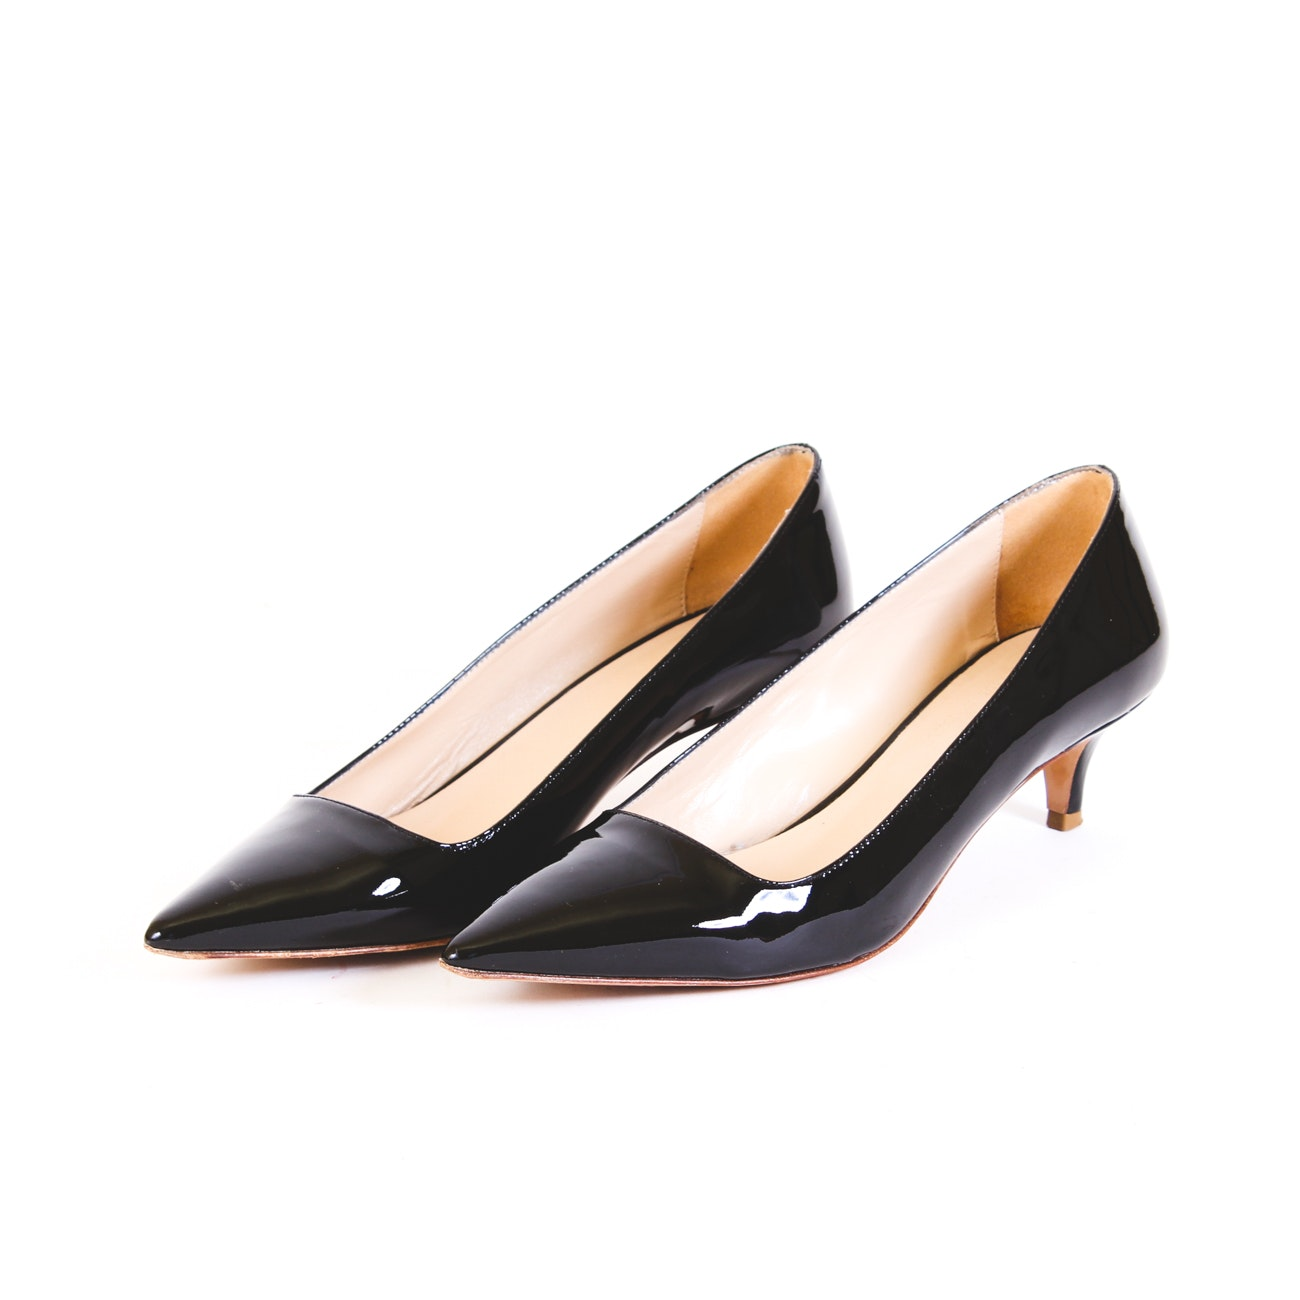 Paolo Bentini Black Patent Leather Kitten Heel Pumps